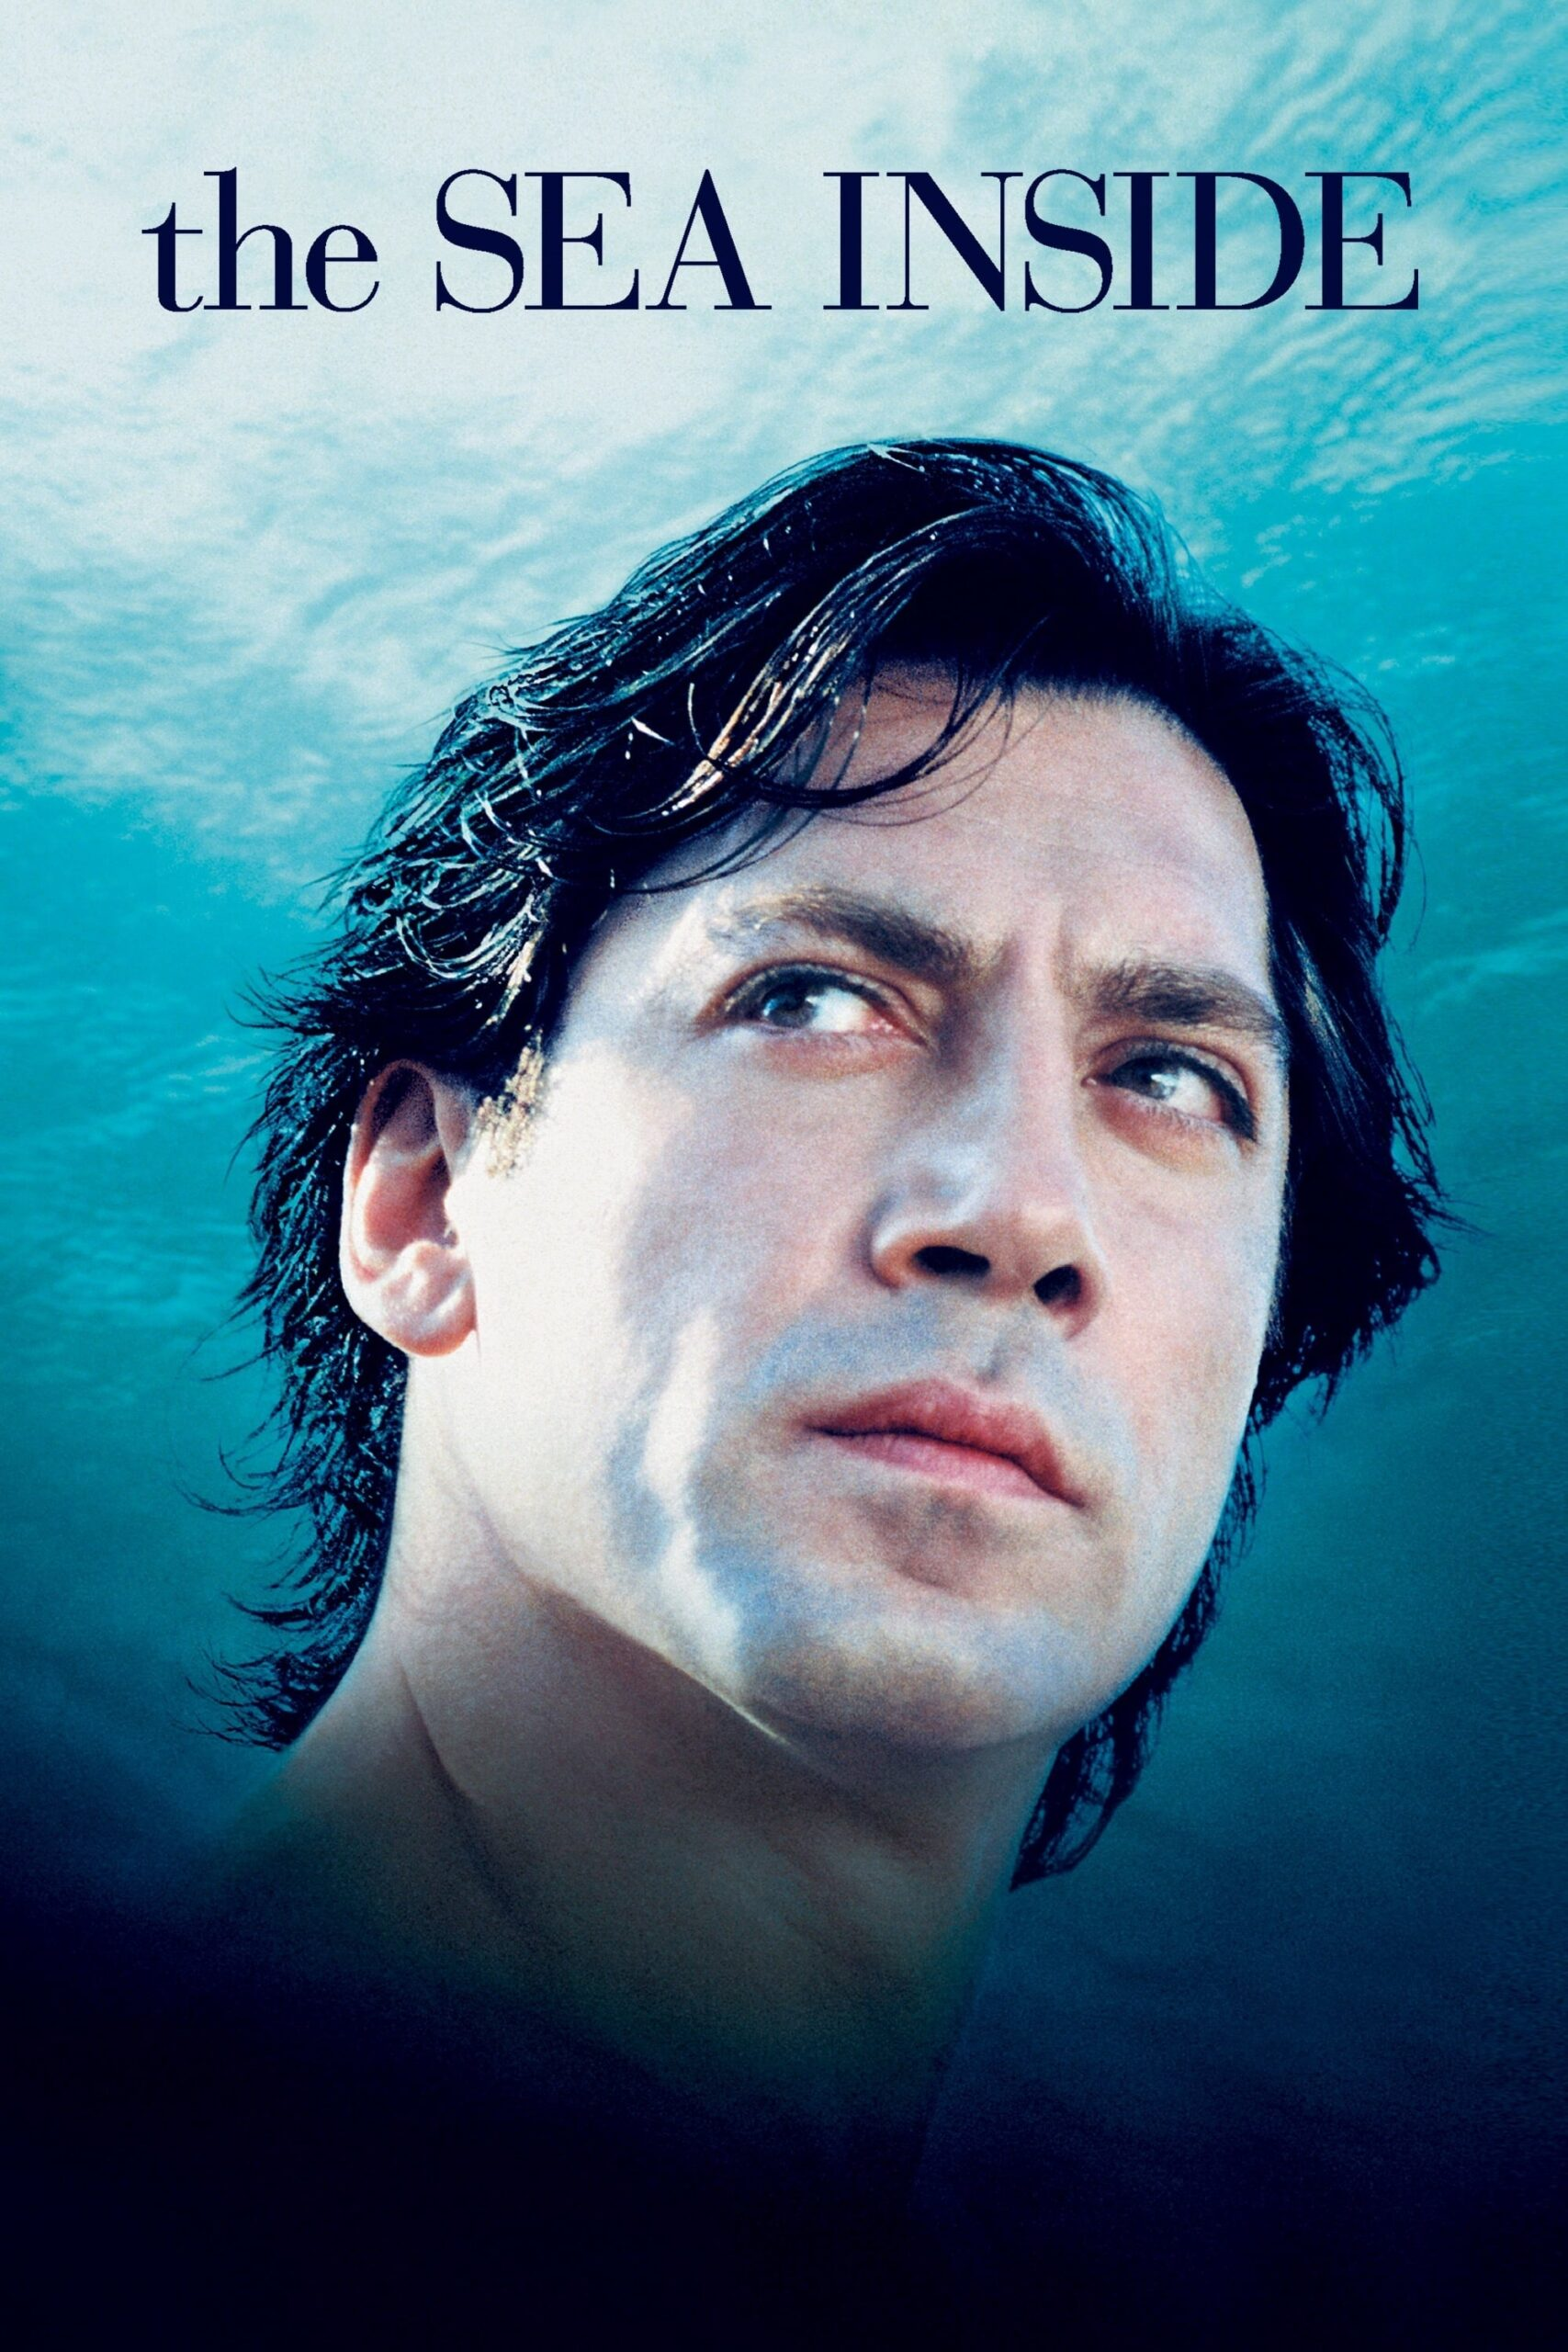 The Sea Inside Movie Streaming Online